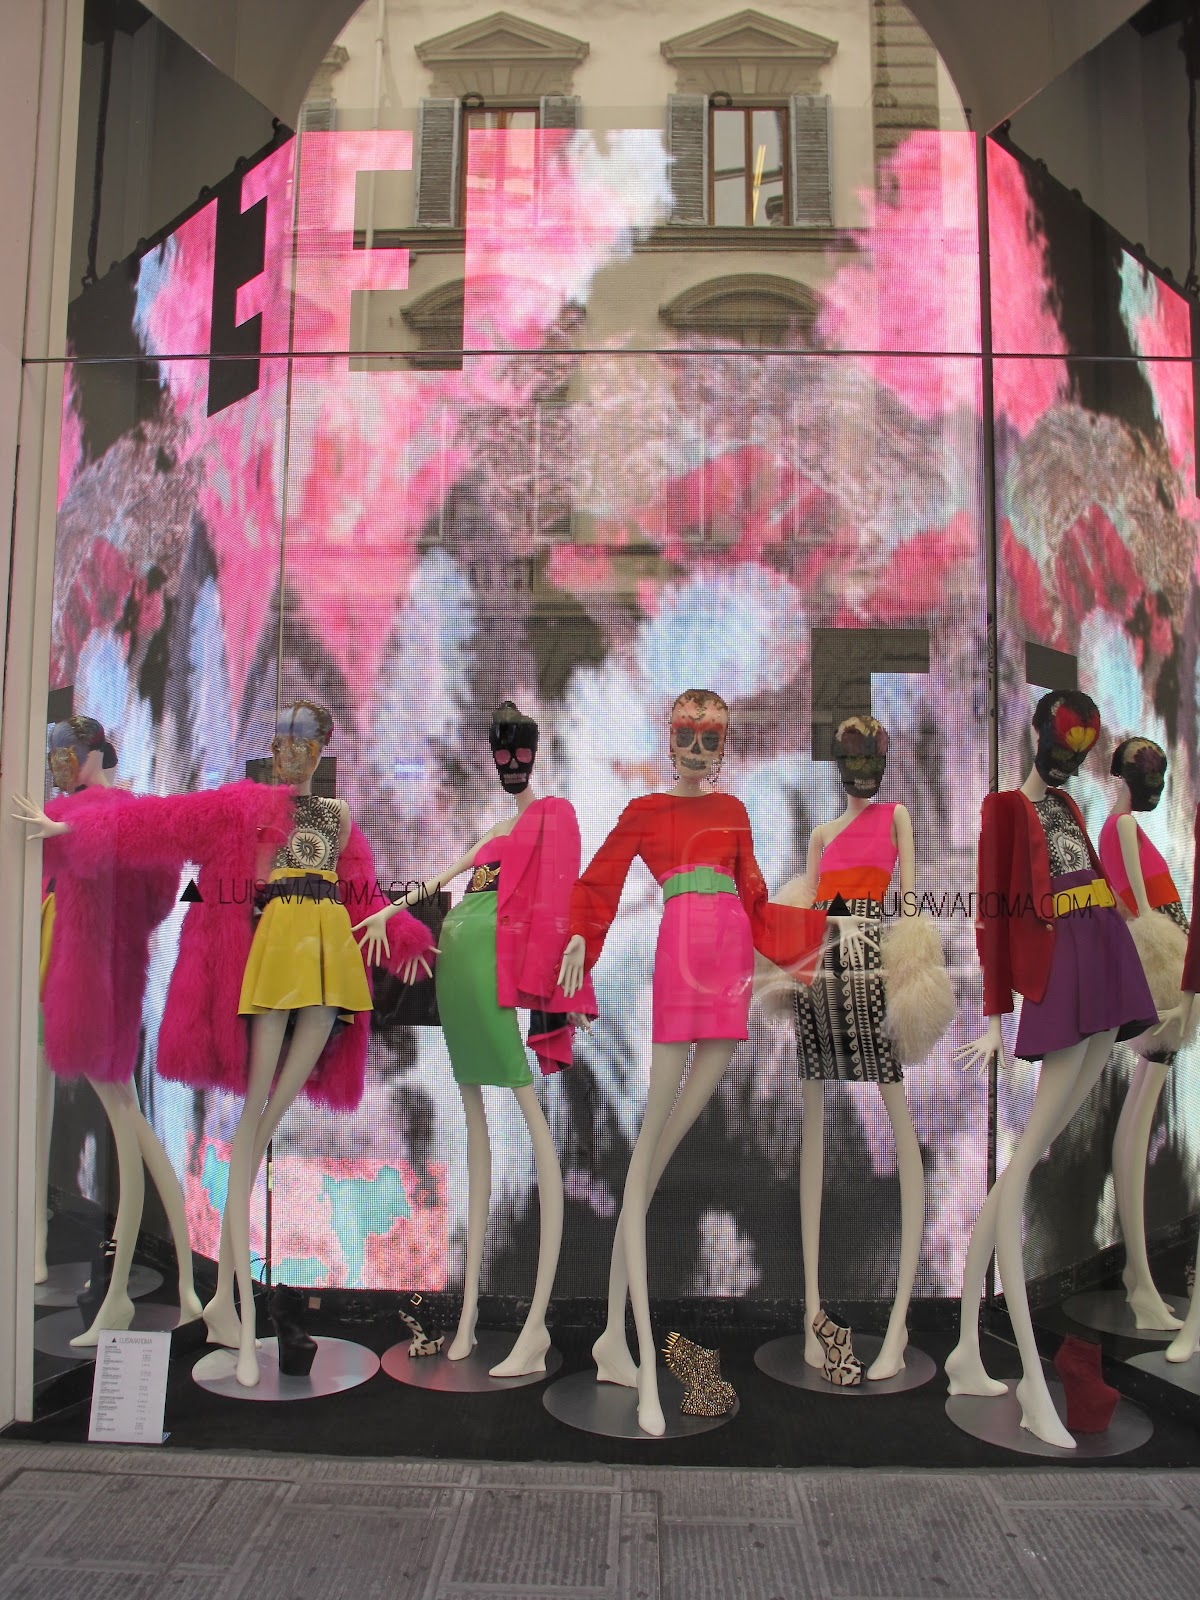 Meoutfit meoutfit 850 luisaviaroma new windows for Luisa via di roma